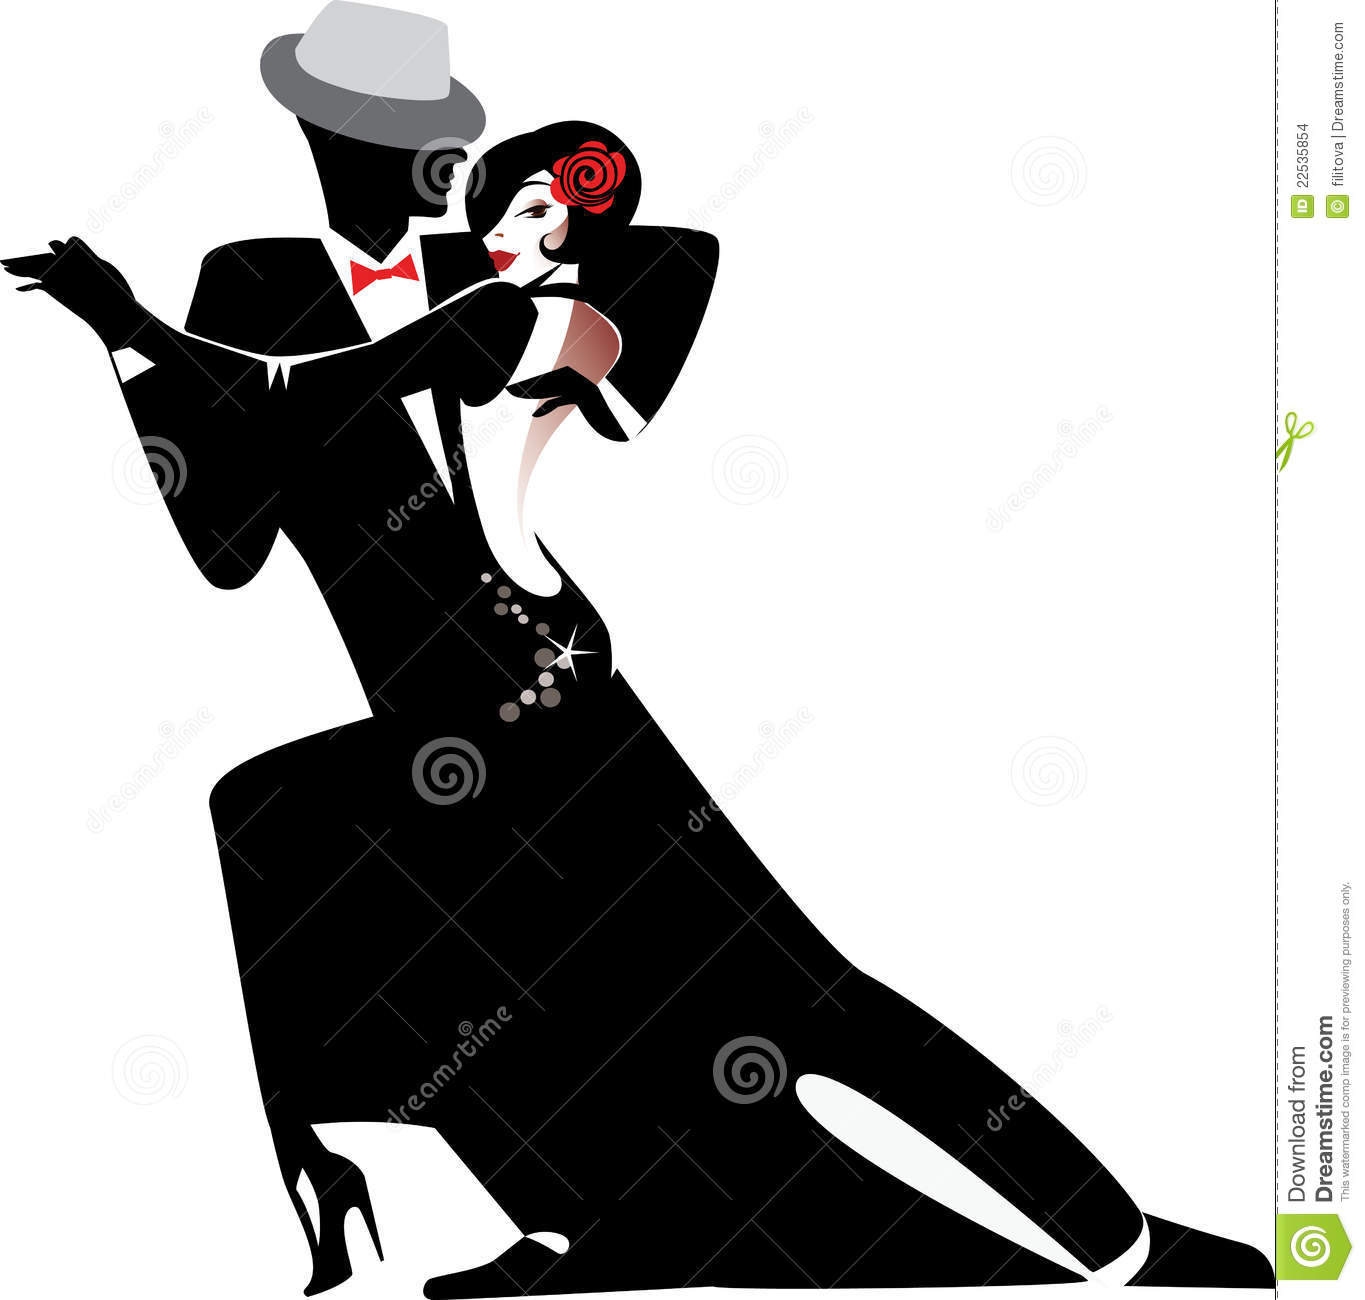 More similar stock images of ` Silhouette of couple dancing tango `